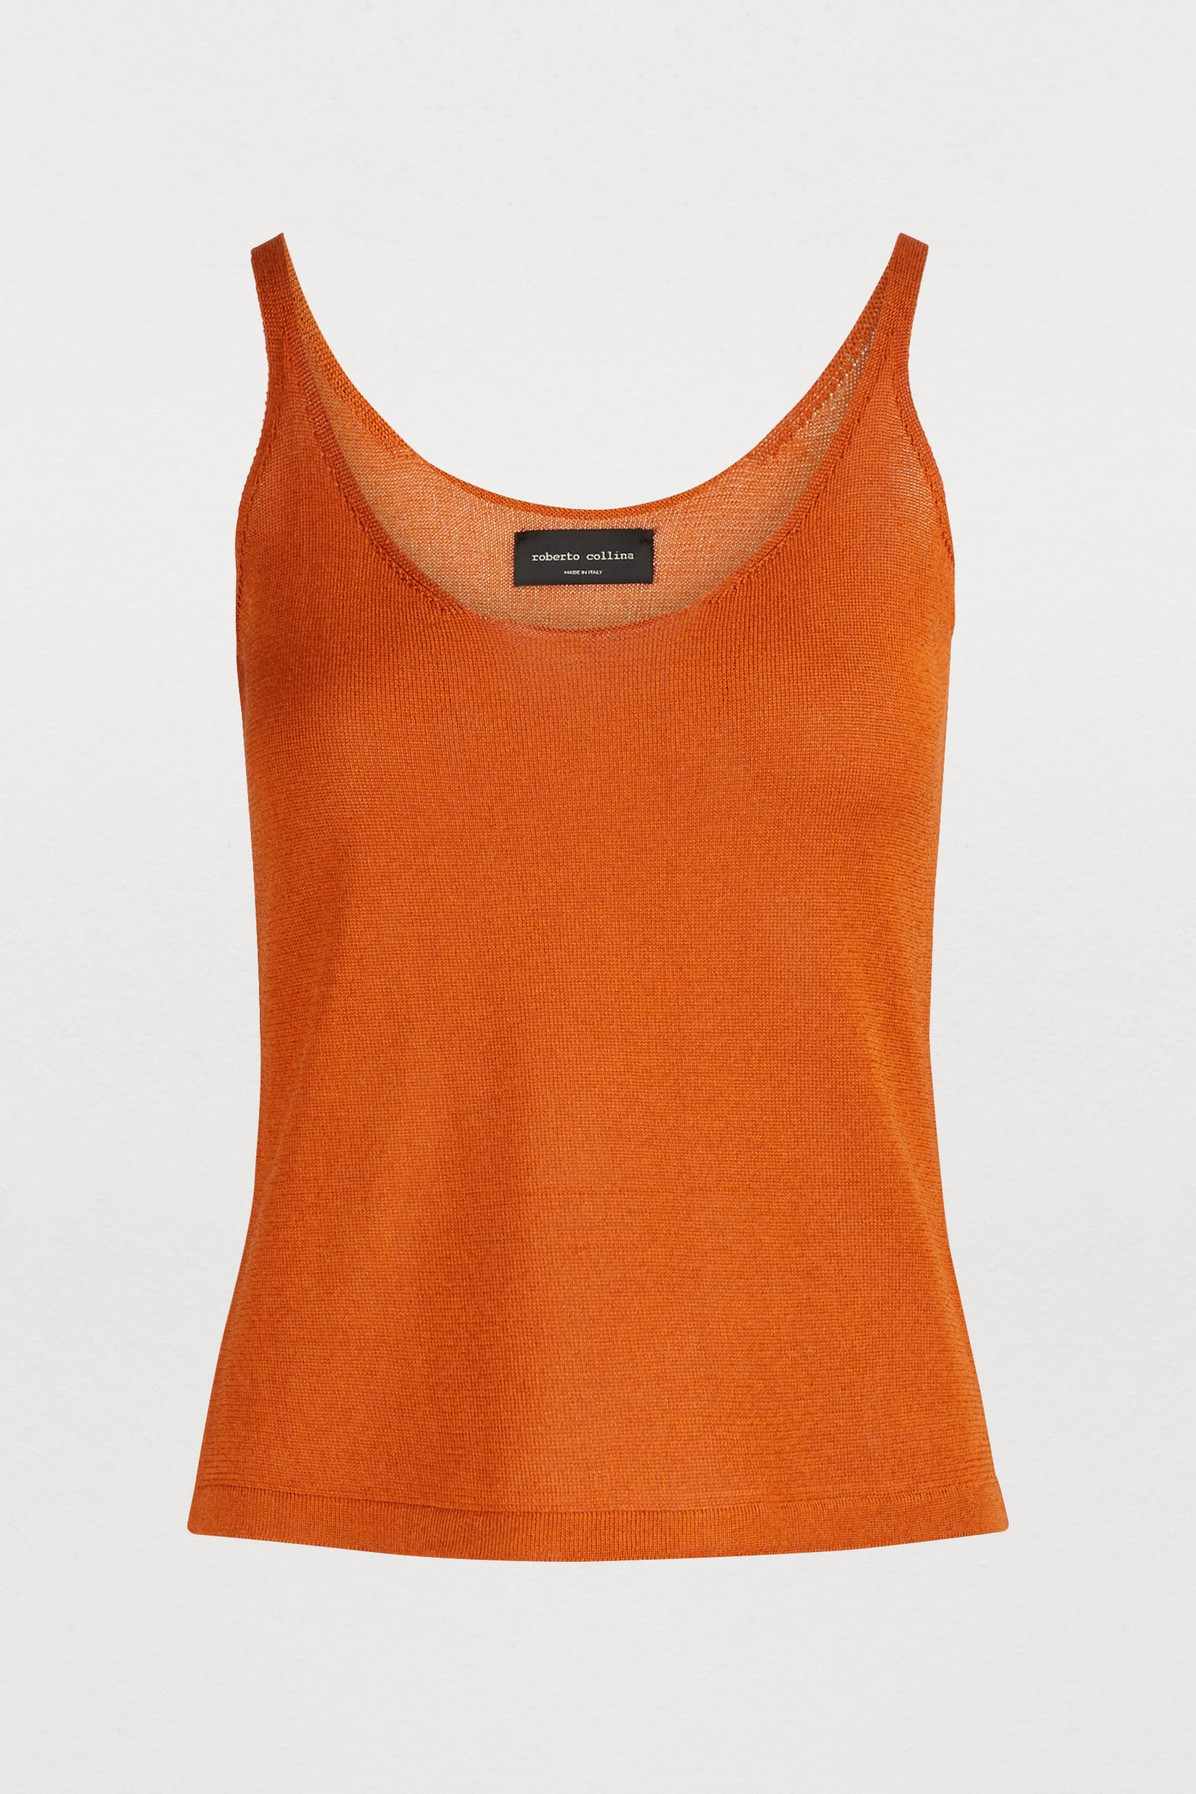 Roberto Collina OVAL-NECK TANK TOP